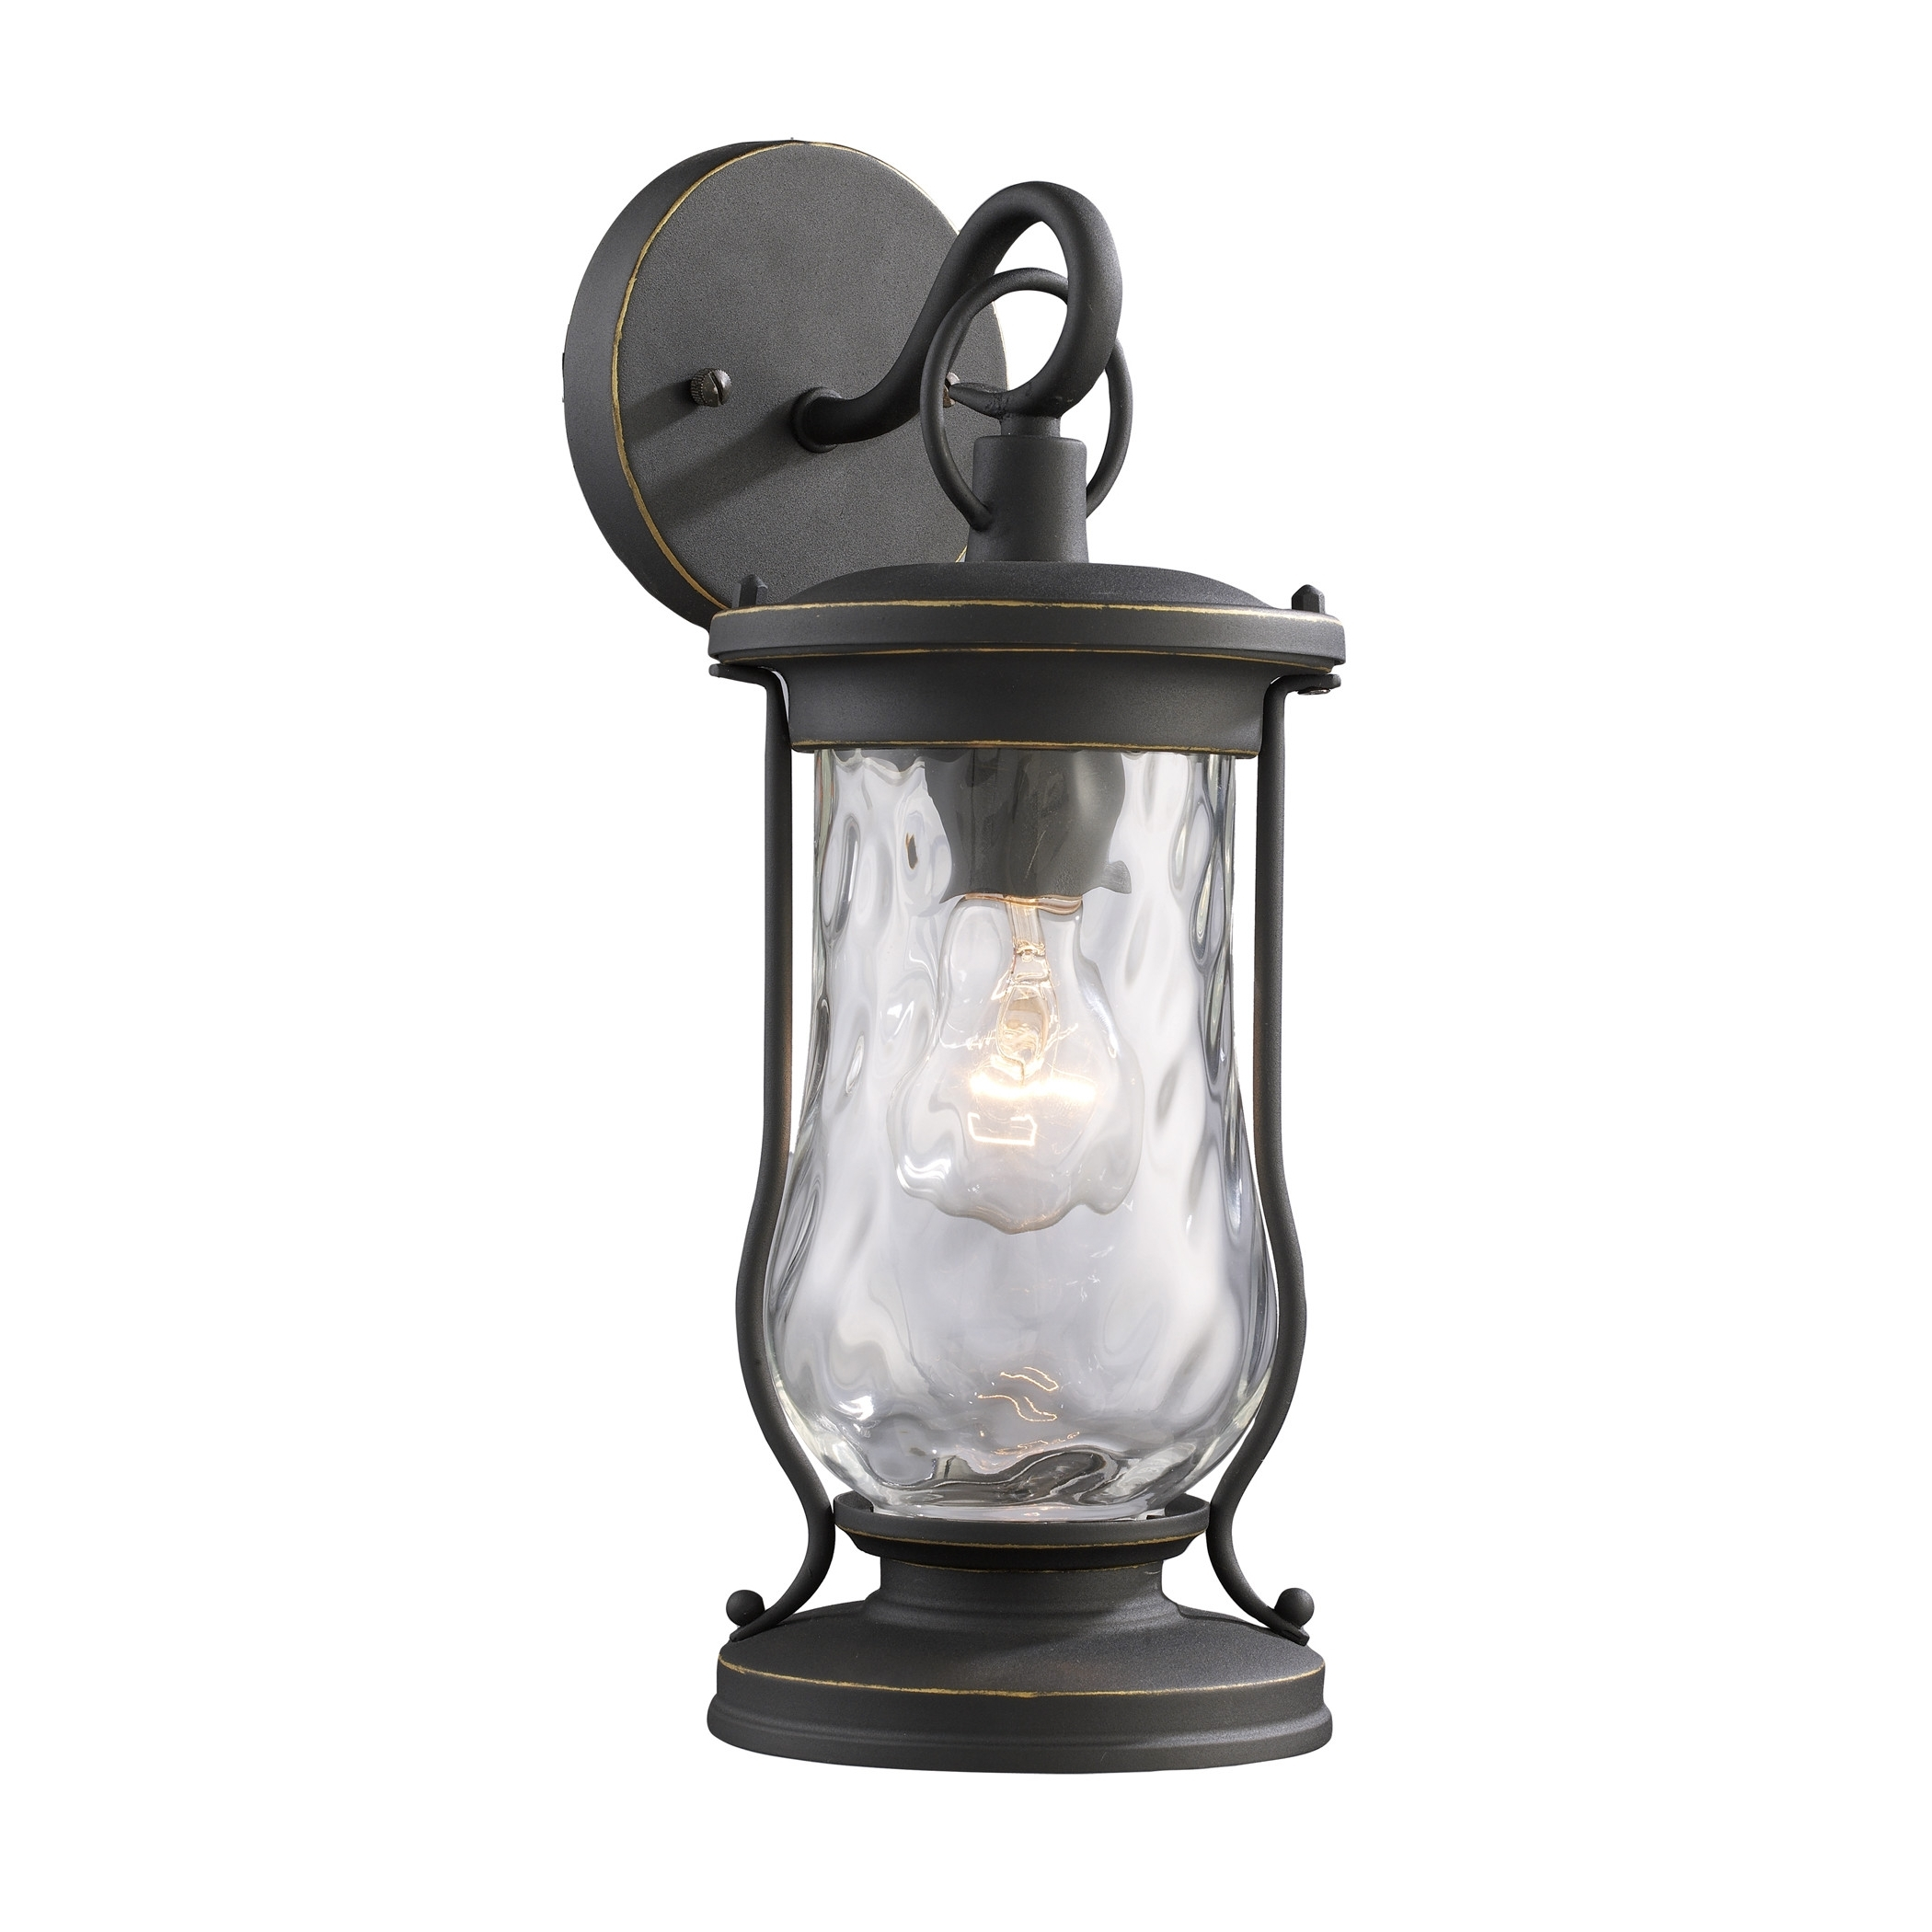 Outdoor Wall Lighting Wayfair Farmstead 1 Light Sconce ~ Loversiq Inside Preferred Garden Porch Light Fixtures At Wayfair (View 20 of 20)